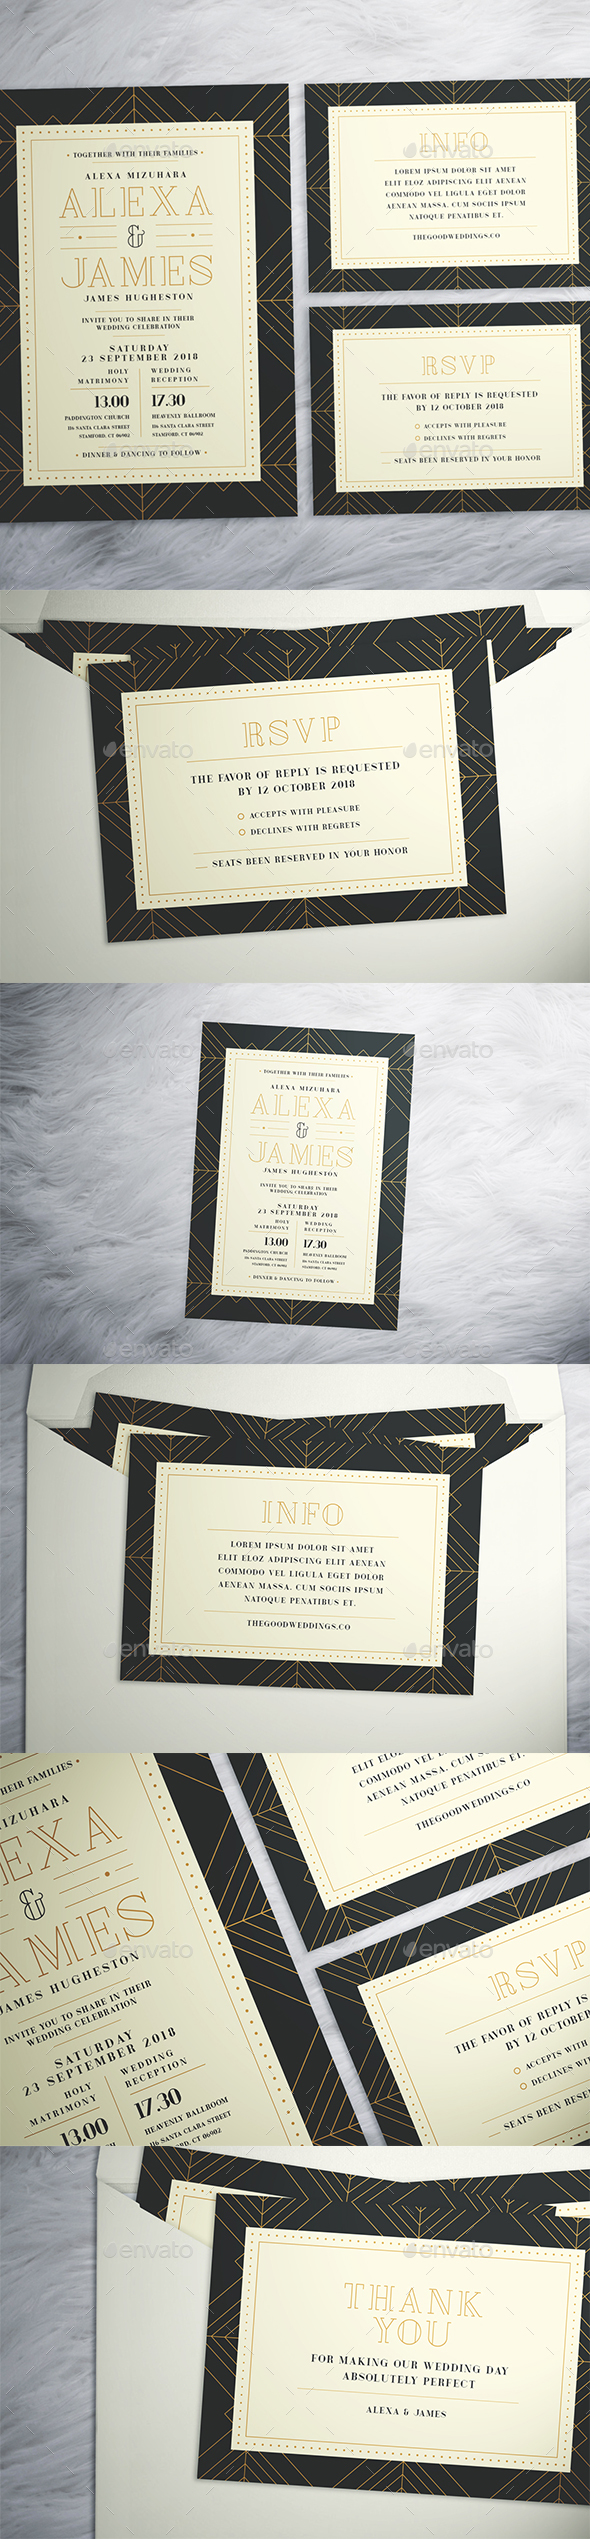 Art Deco Wedding Suite - Weddings Cards & Invites